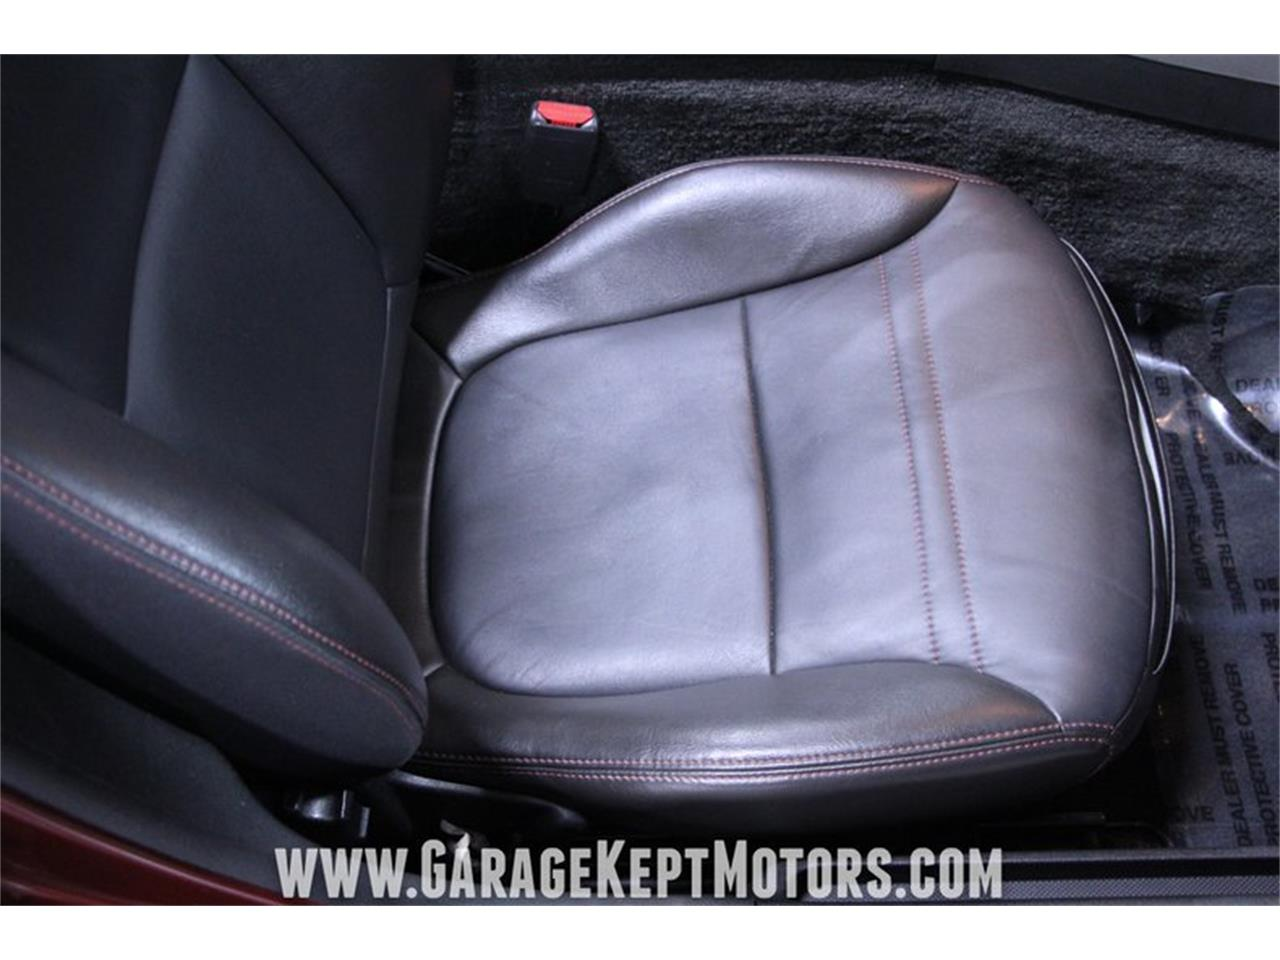 2009 Saturn Sky for sale in Grand Rapids, MI – photo 54